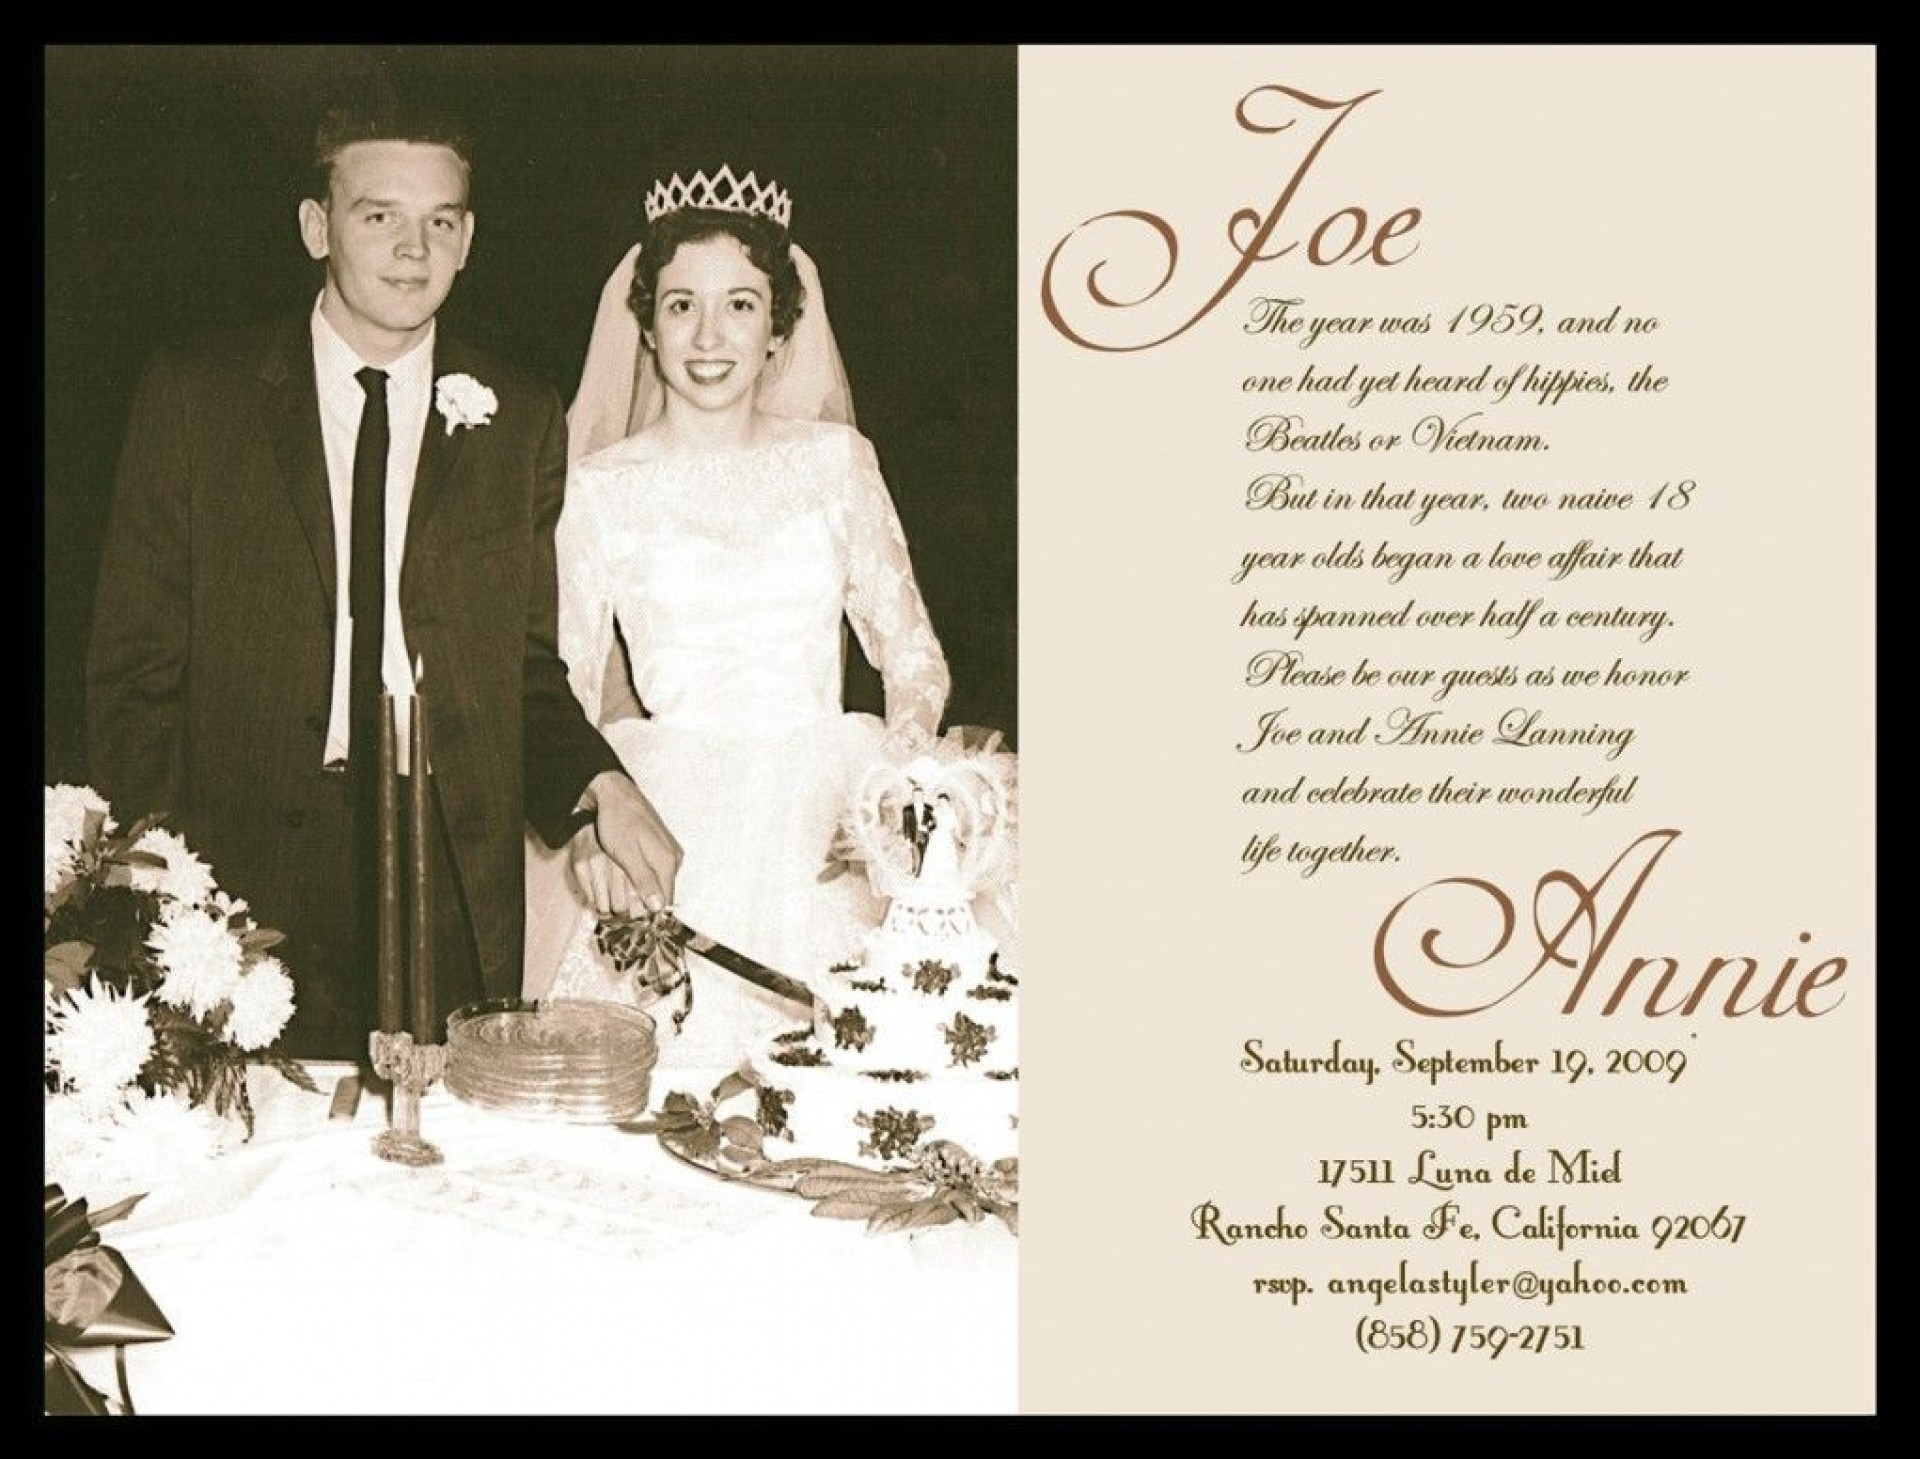 008 Wondrou 50th Anniversary Invitation Template Free Concept  For Word Golden Wedding Download1920